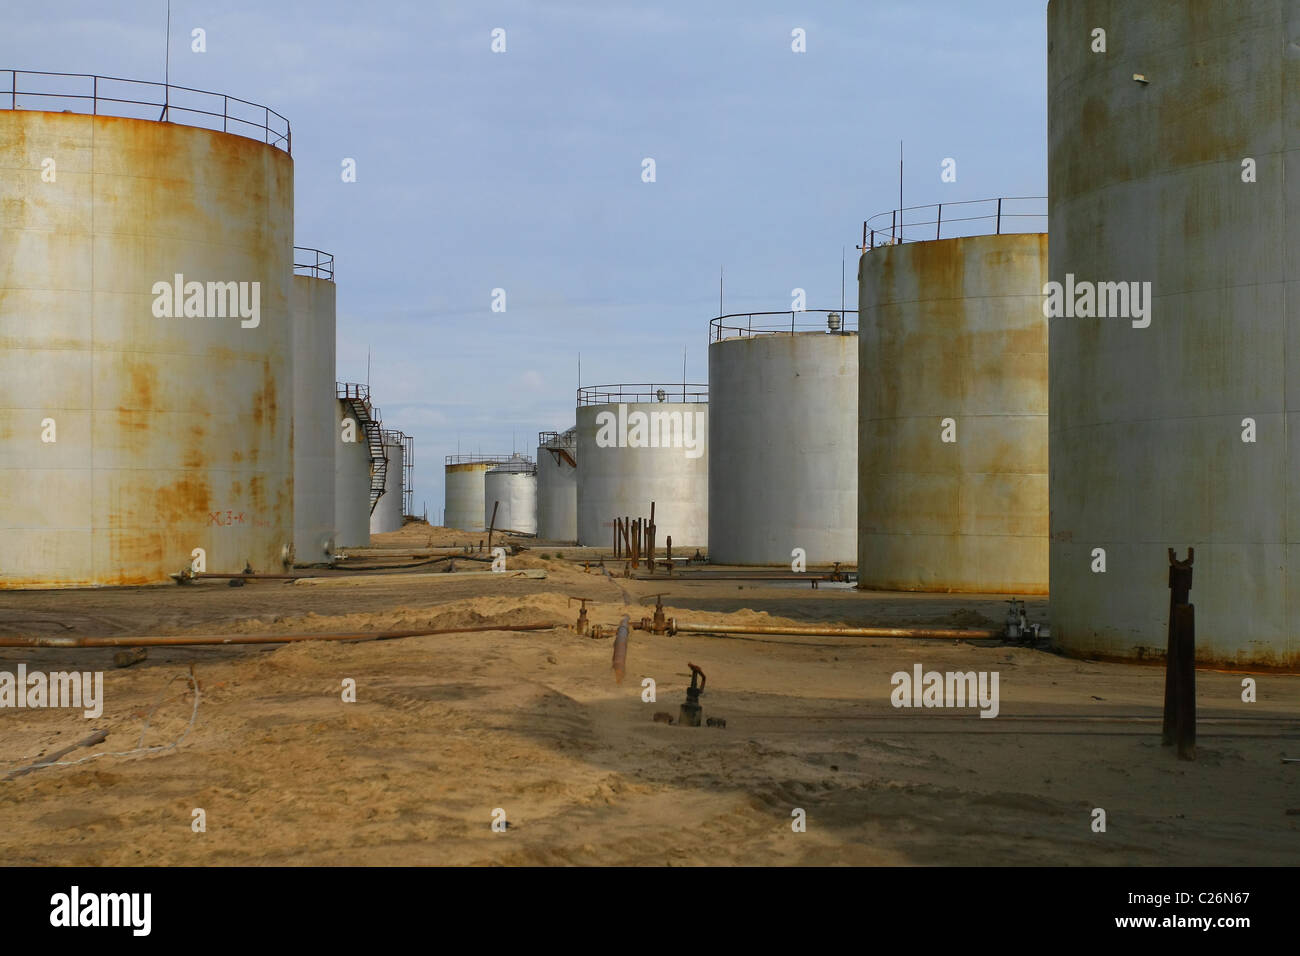 Bulk fuel and lubricant storage. Yamal peninsula, RUSSIA - Stock Image